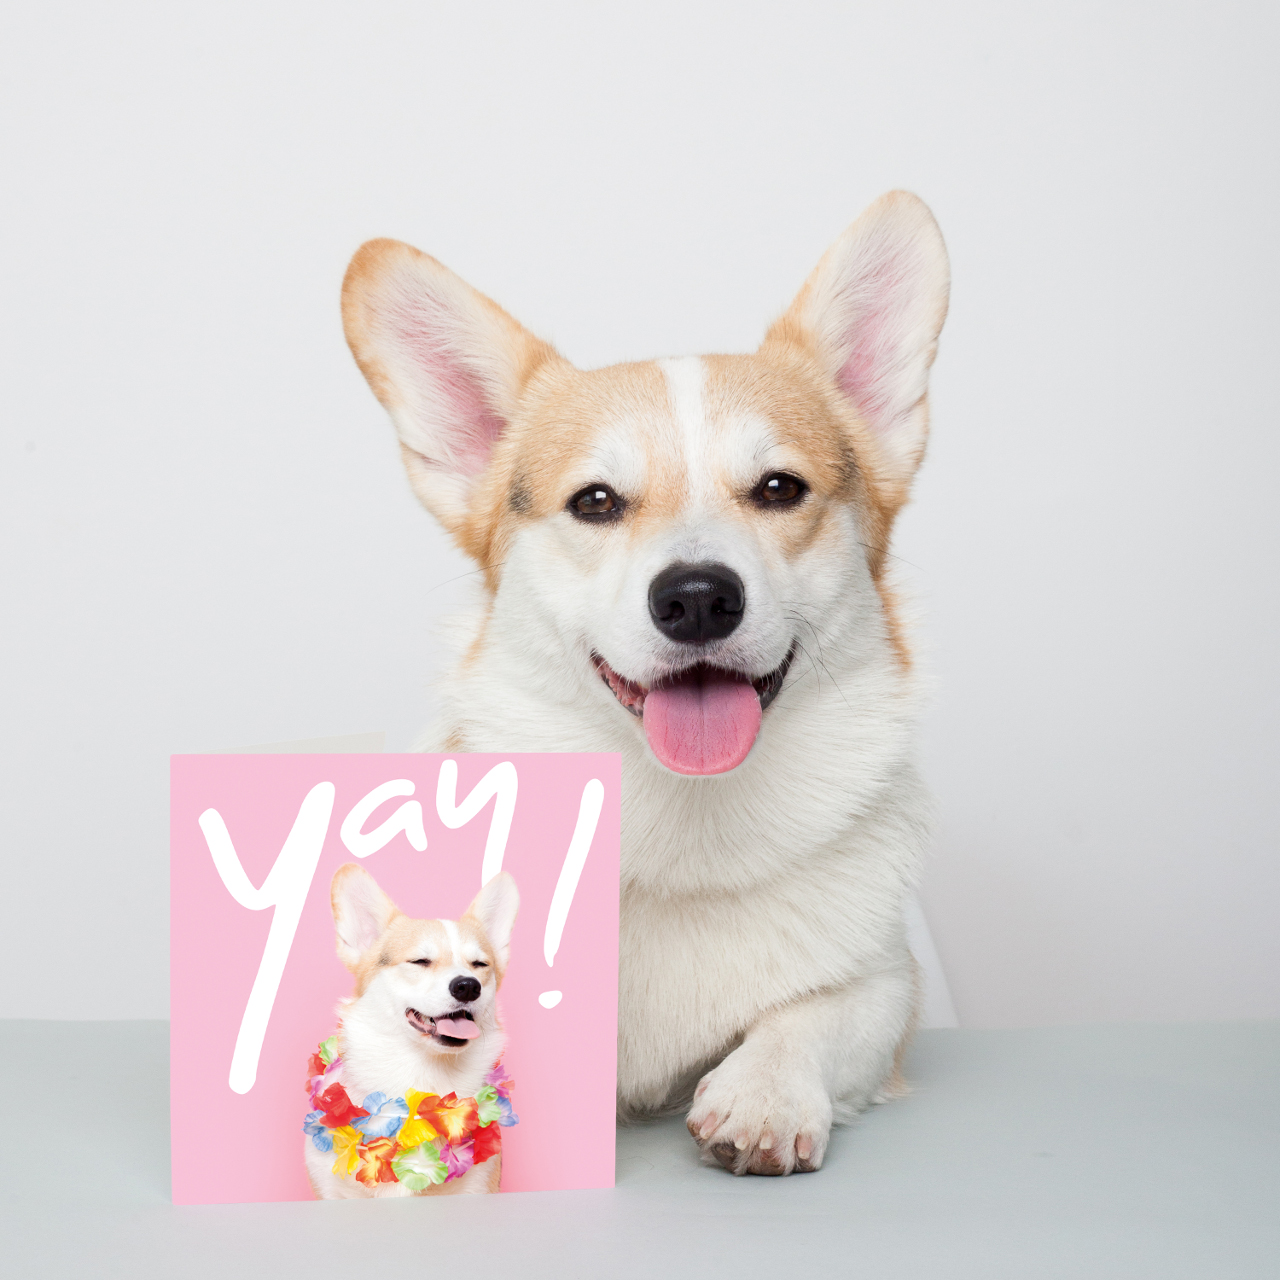 With Love From Winny the Corgi Greeting Card Collection